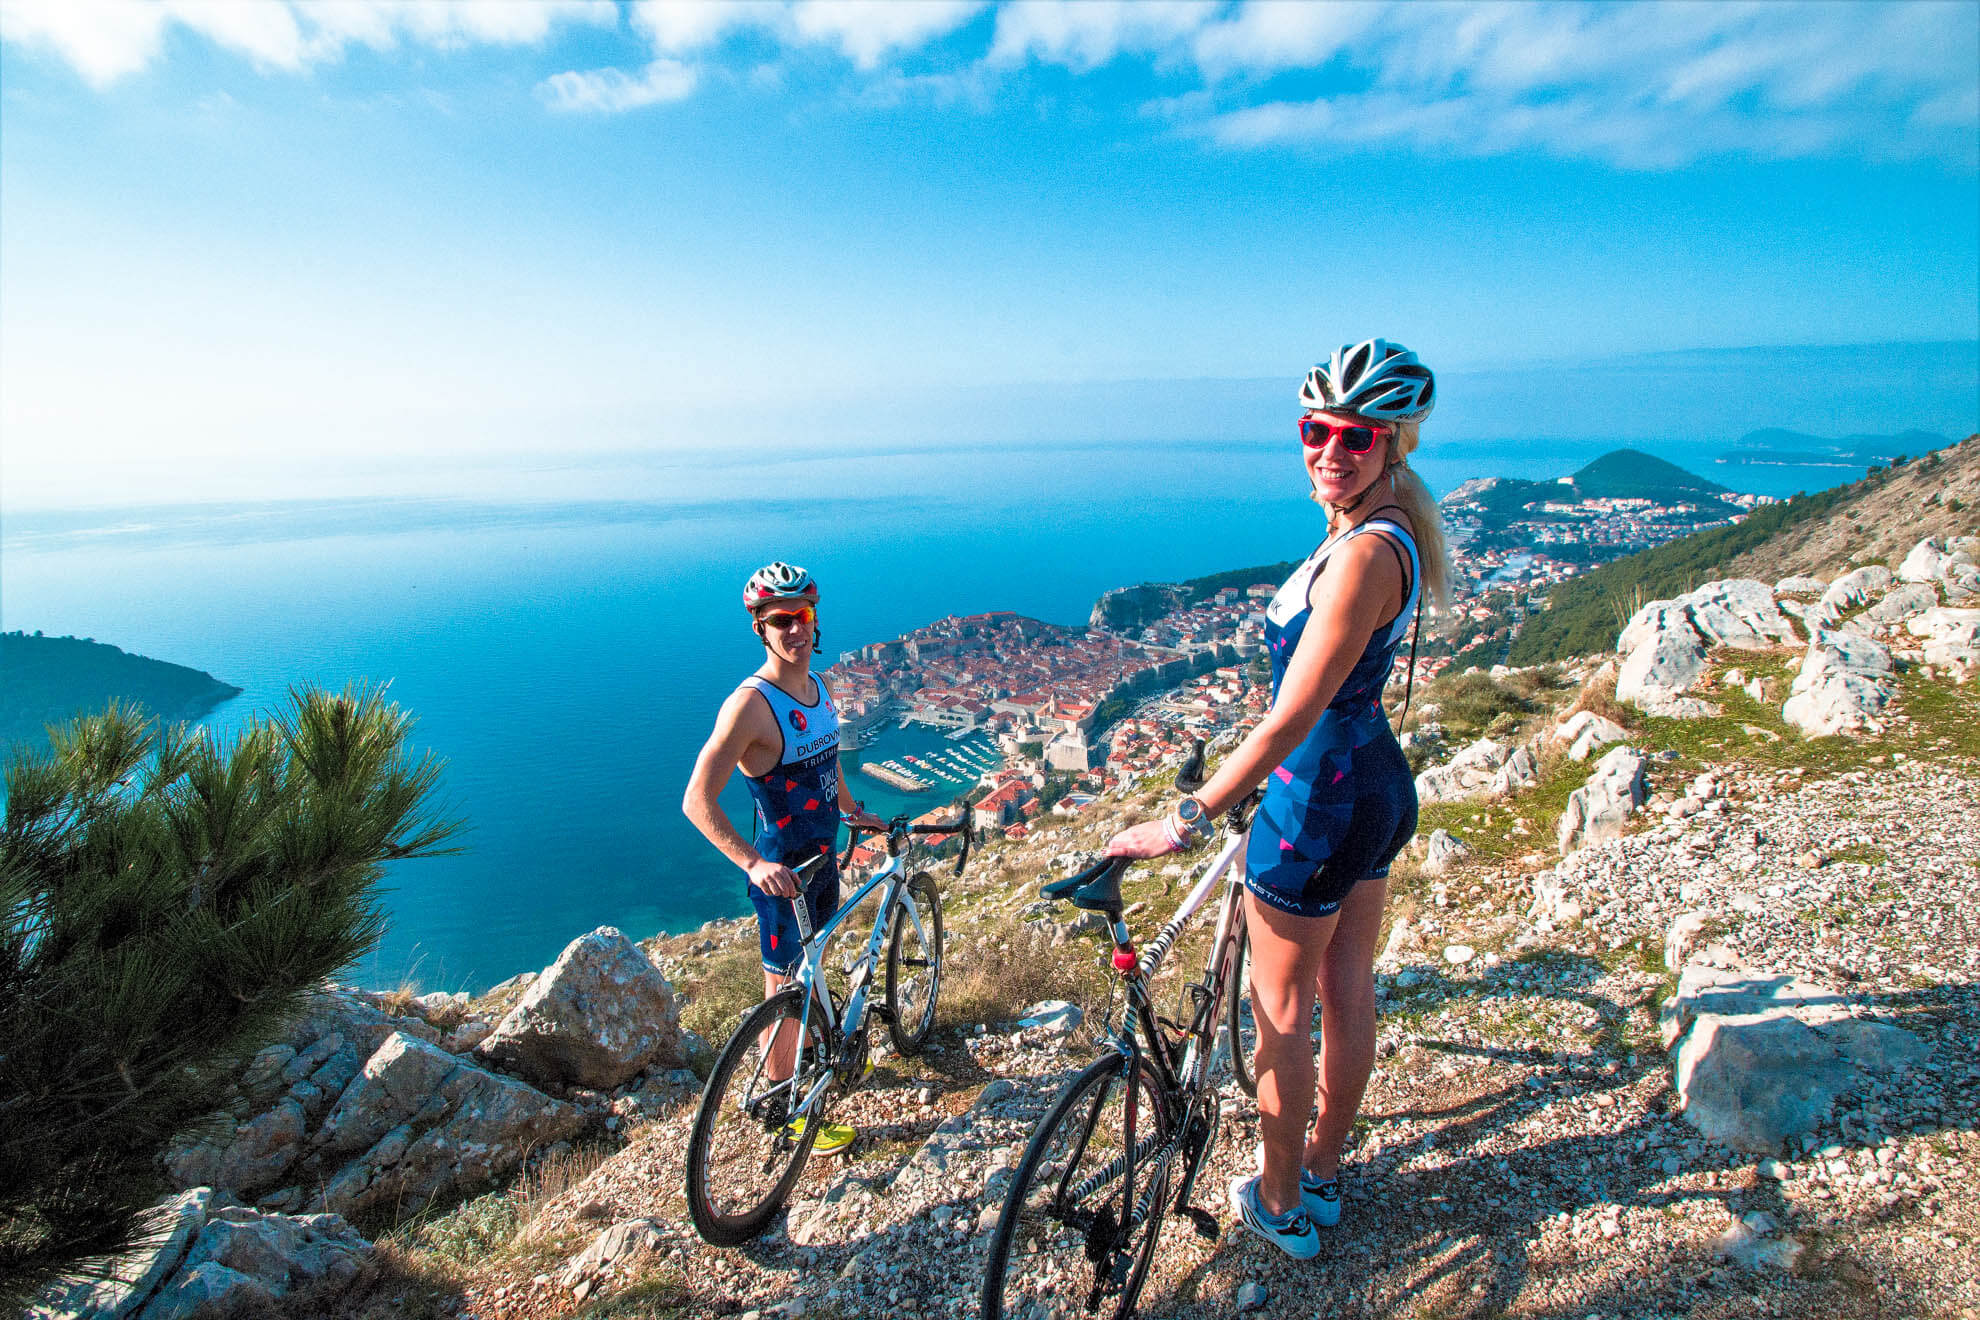 Triathlete biking in Dubrovnik